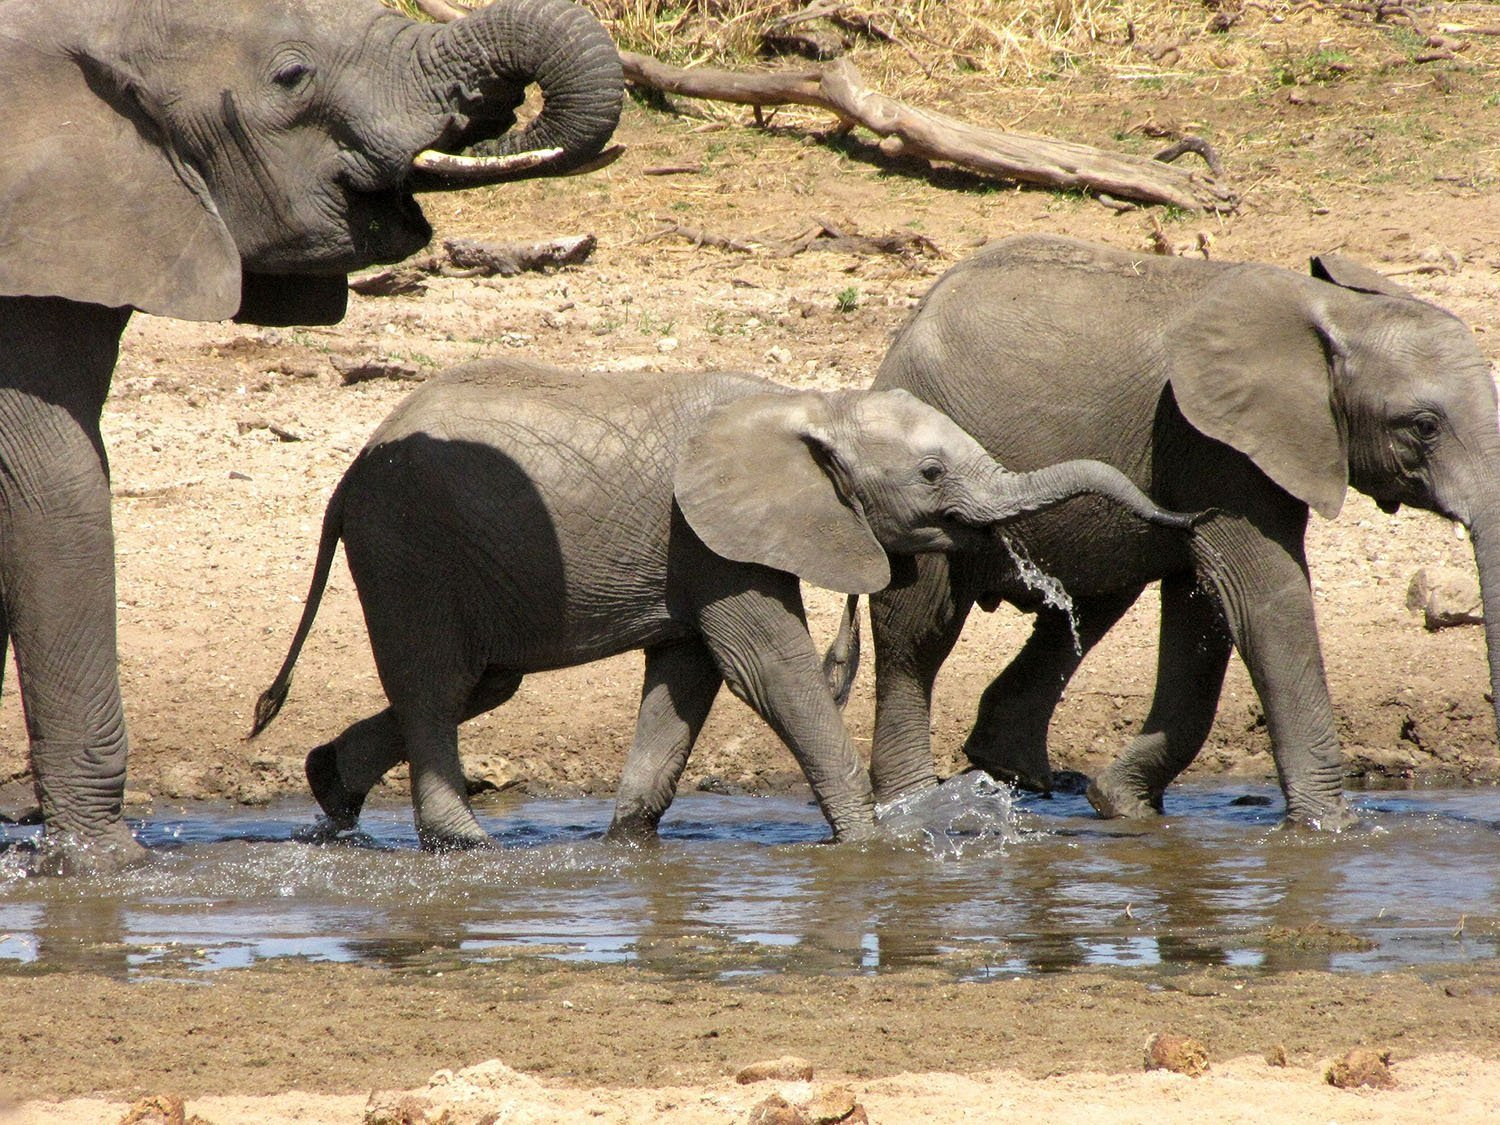 Tanzania national parks and destinations - Tarangire National Park